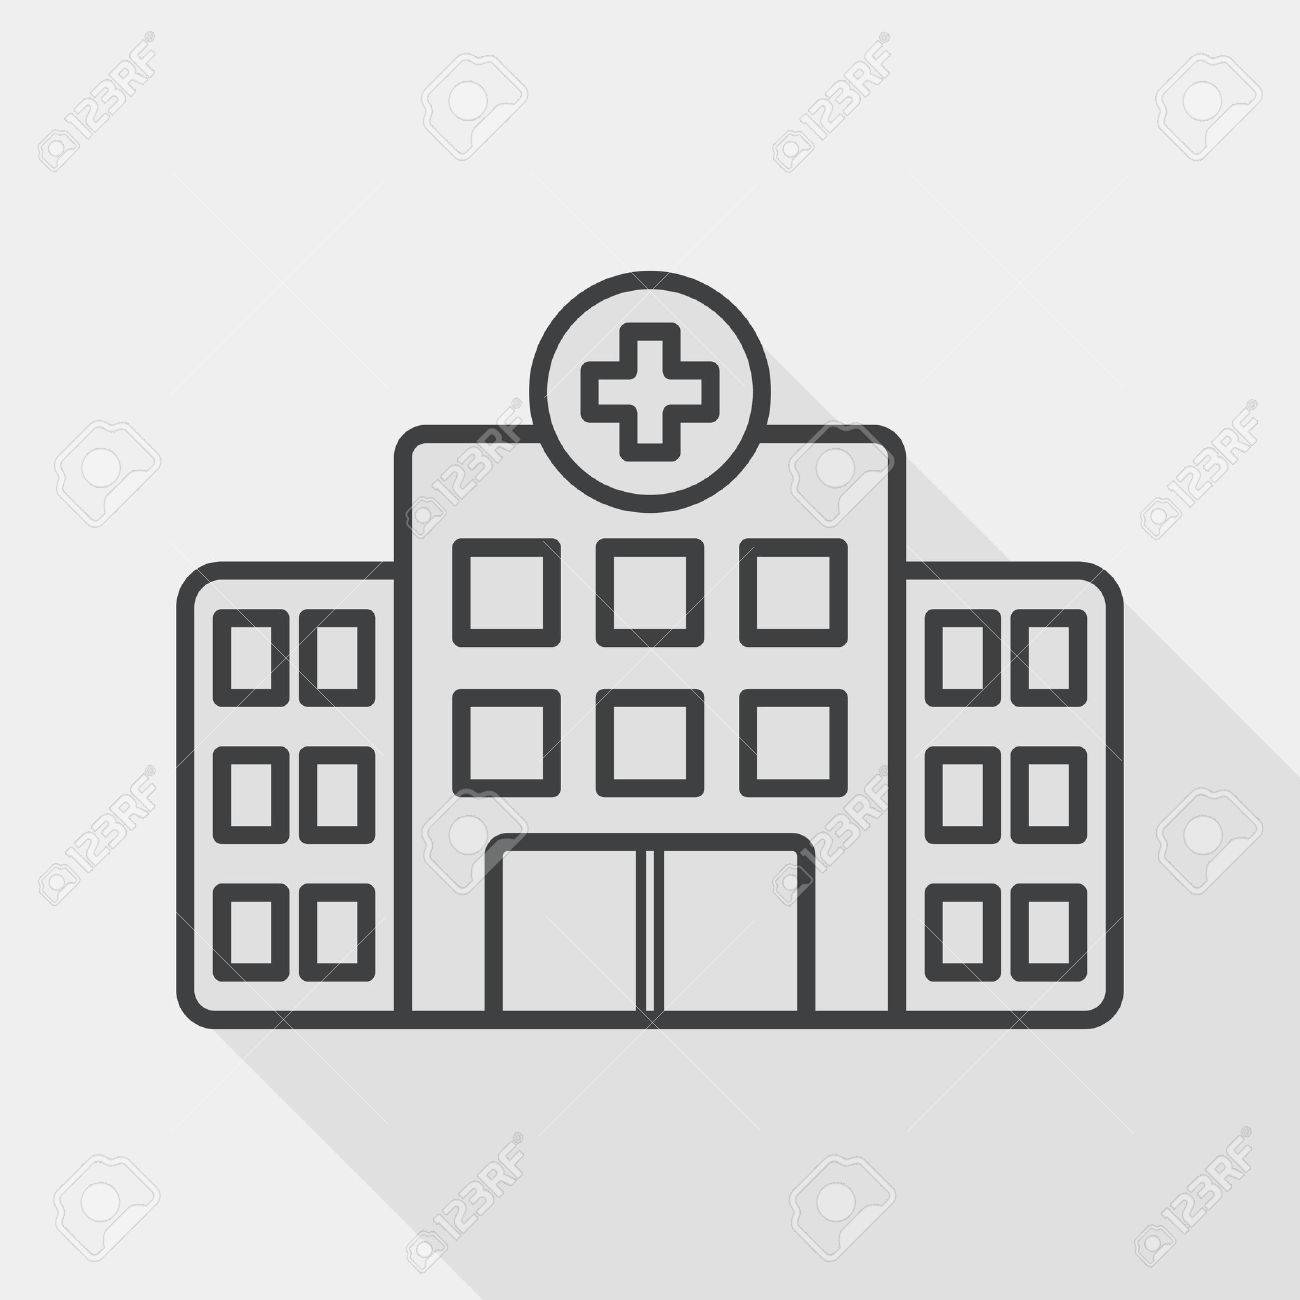 building hospital flat icon with long shadow, line icon - 39492306